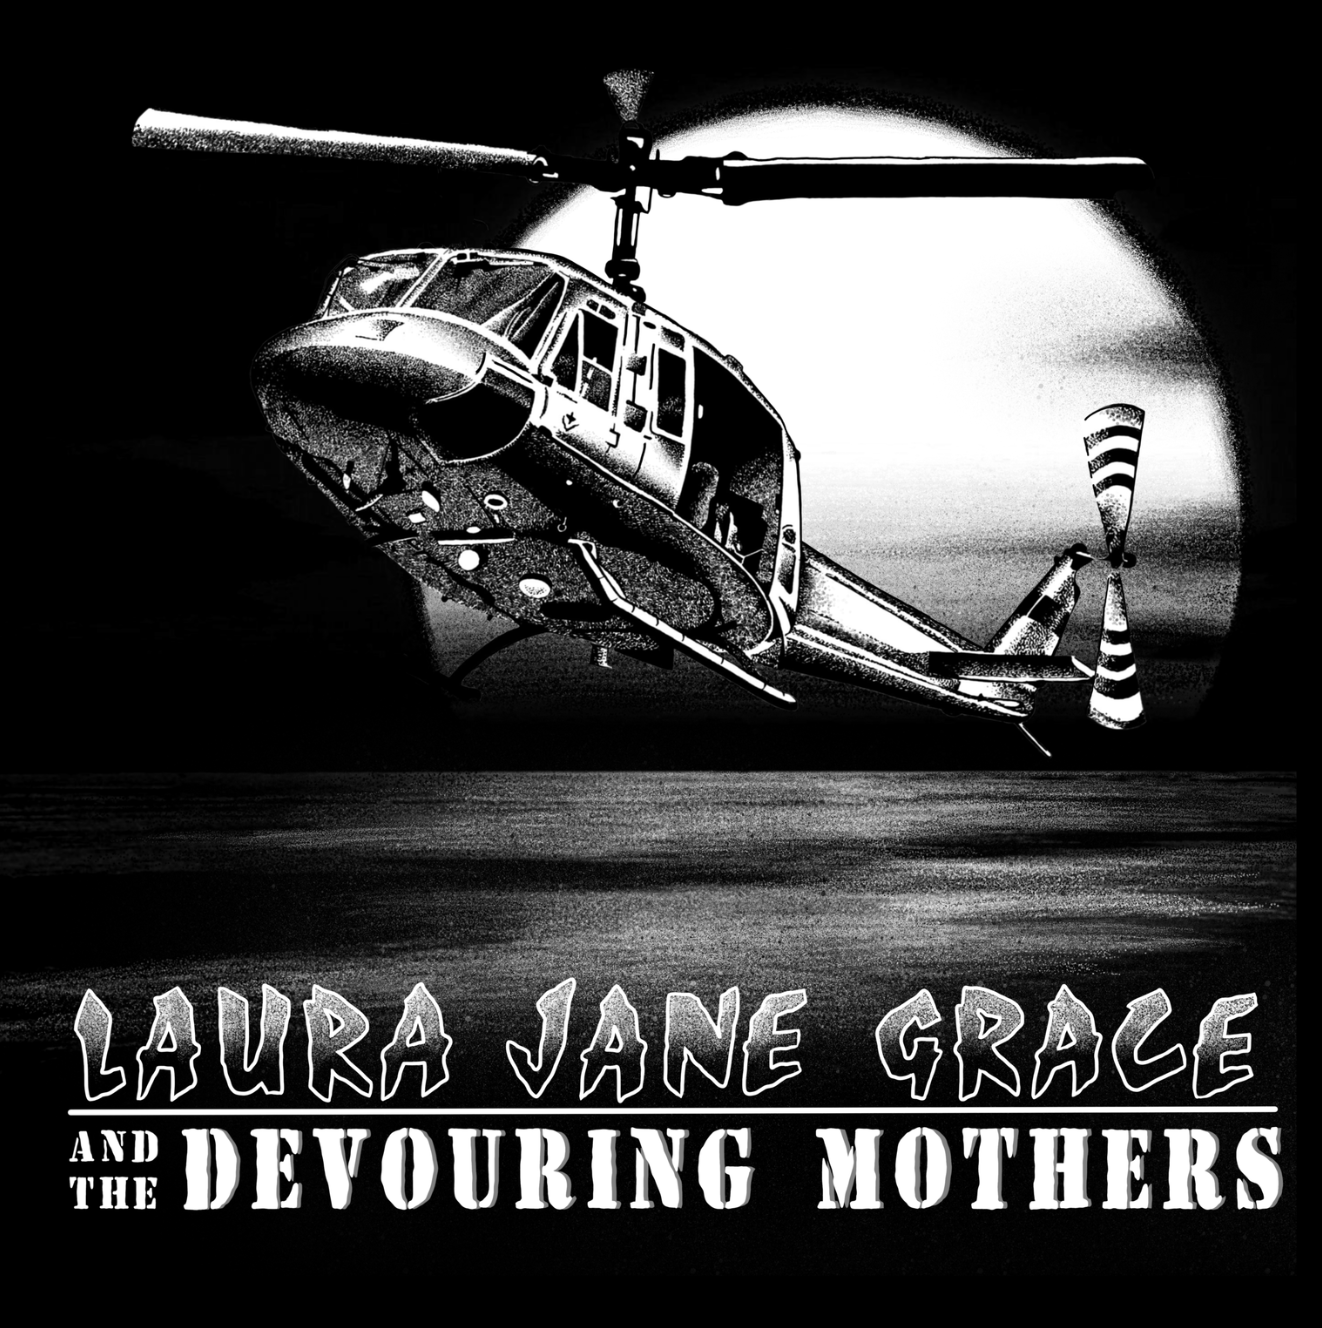 Laura Jane Grace Helicopter T-shirt